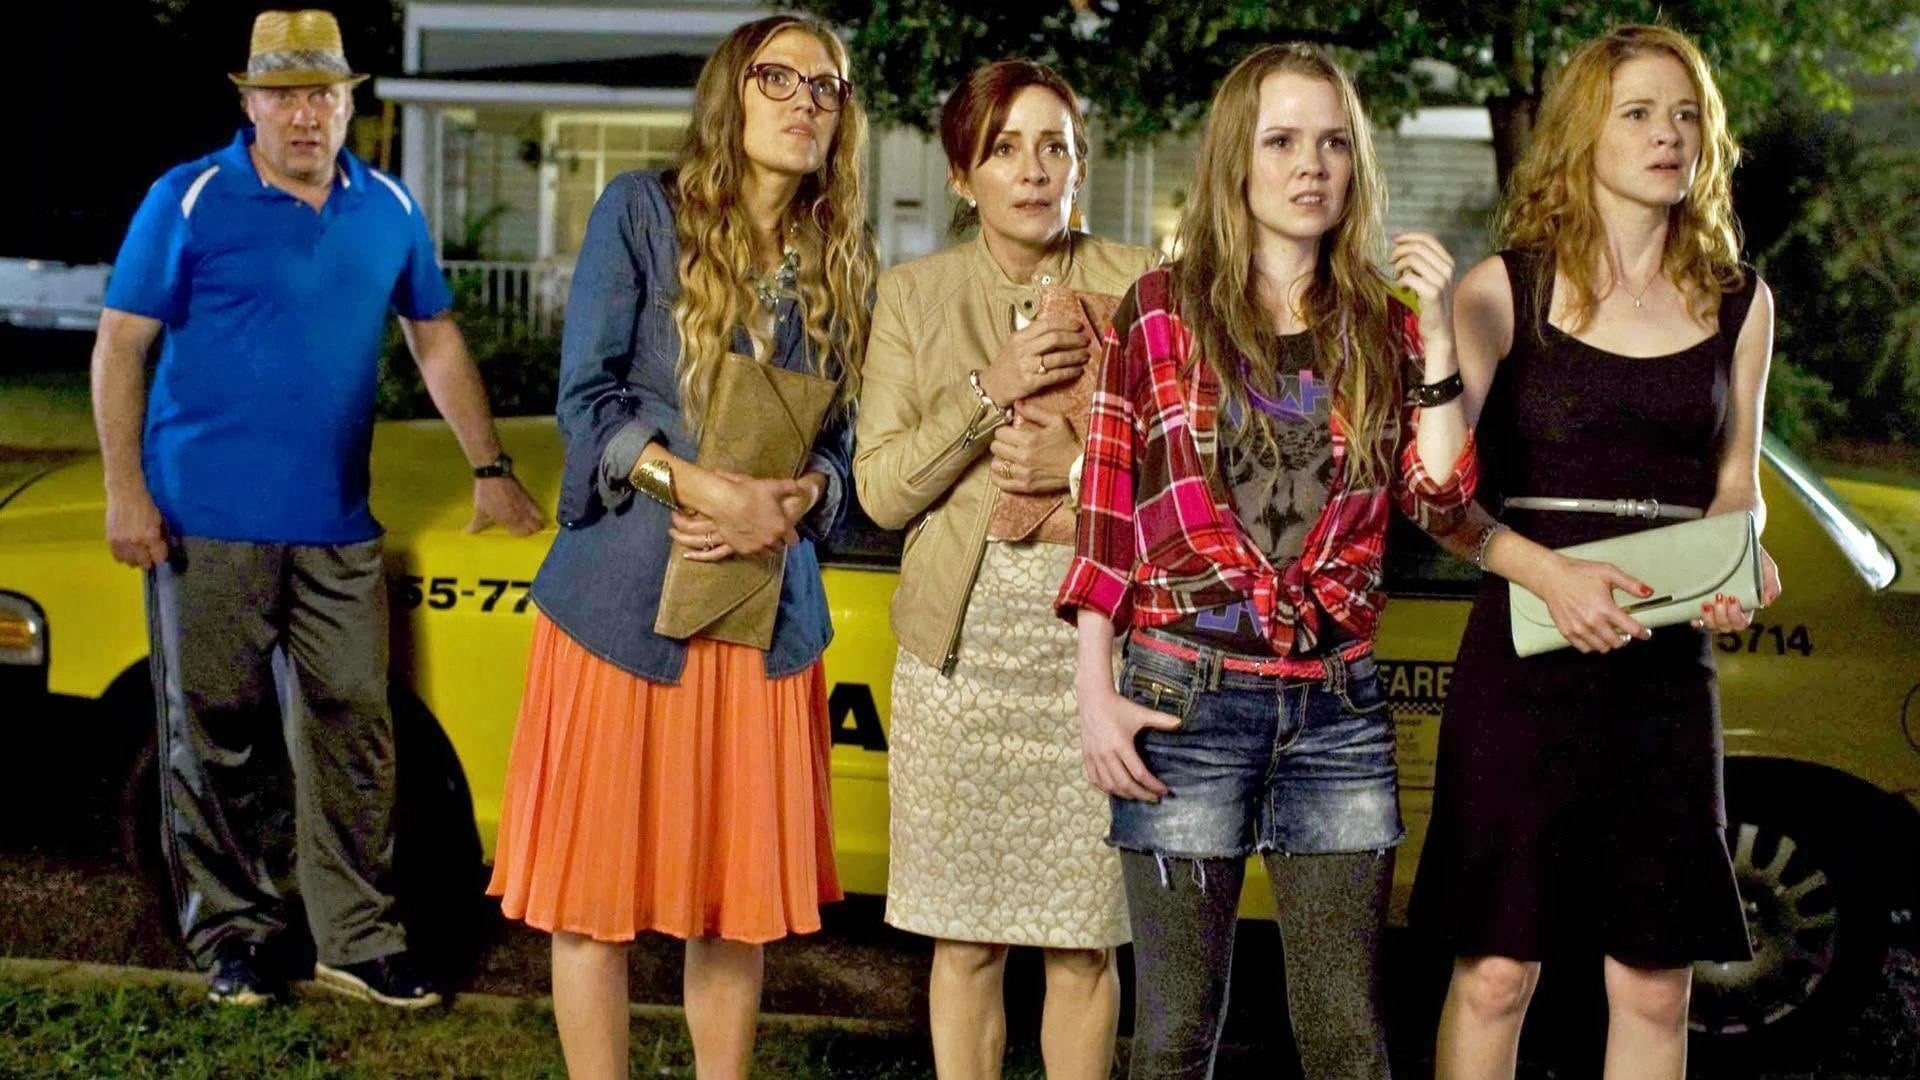 Watch Streaming Moms' Night Out (2014) Movie Online at ml.online-movies.xyz